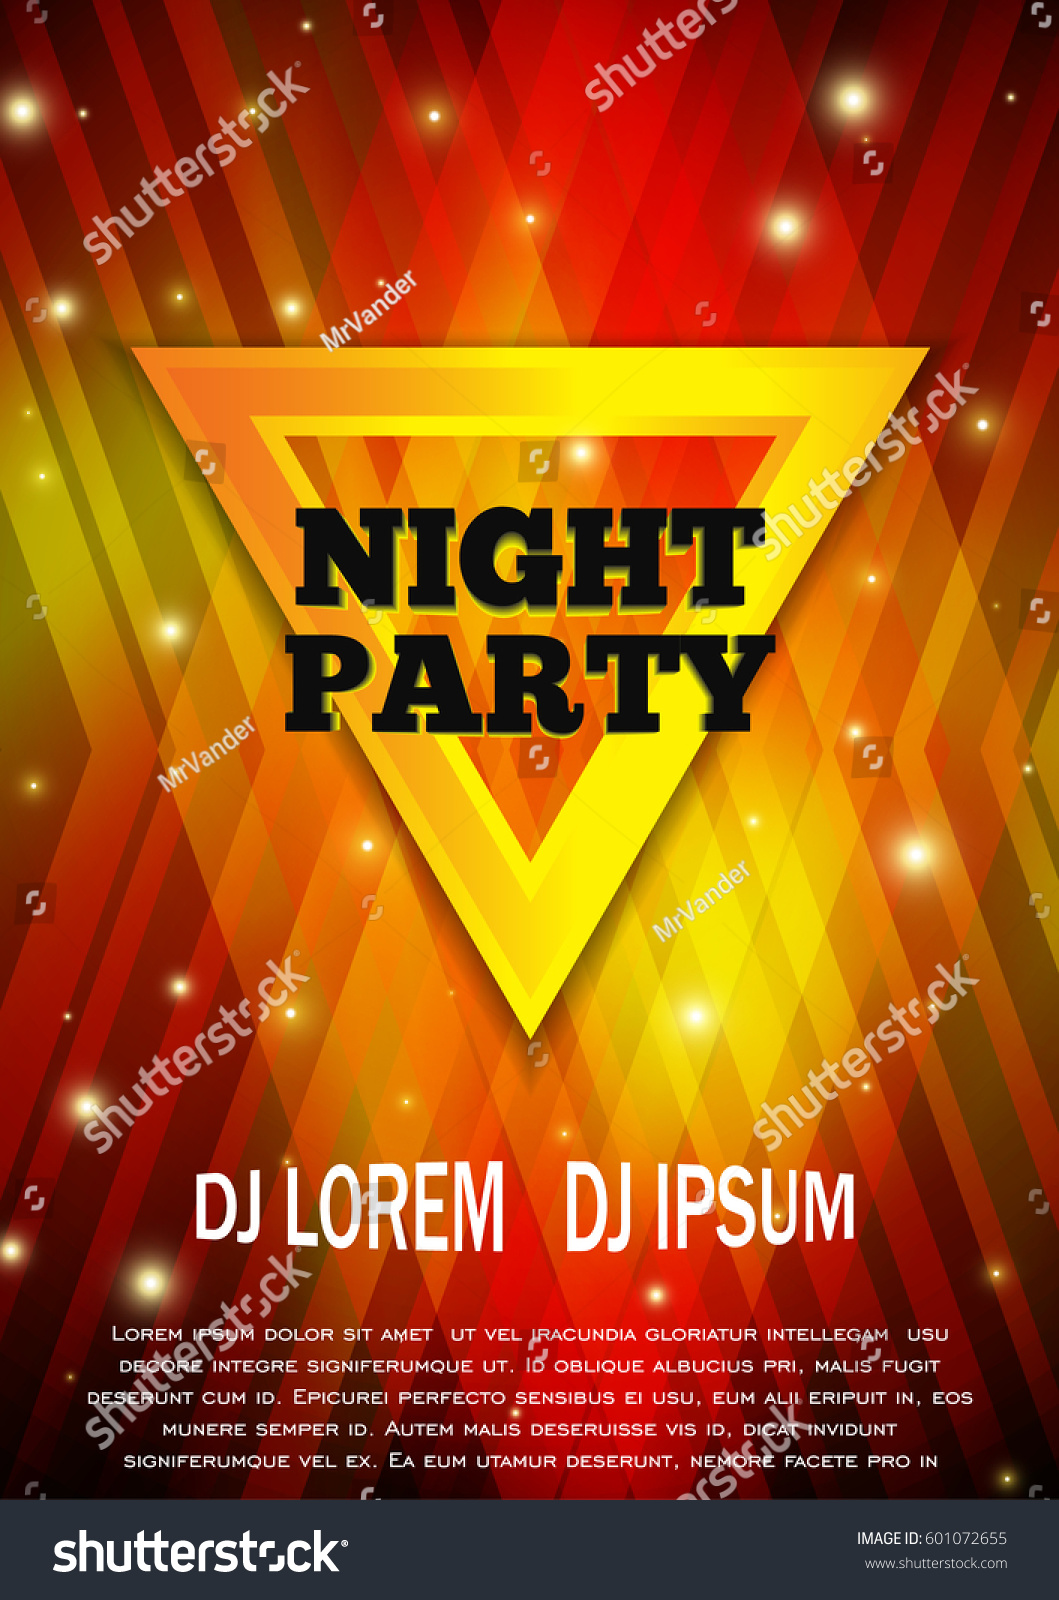 Night Party Flyer Template Club Vector Stock Vector 601072655 ...